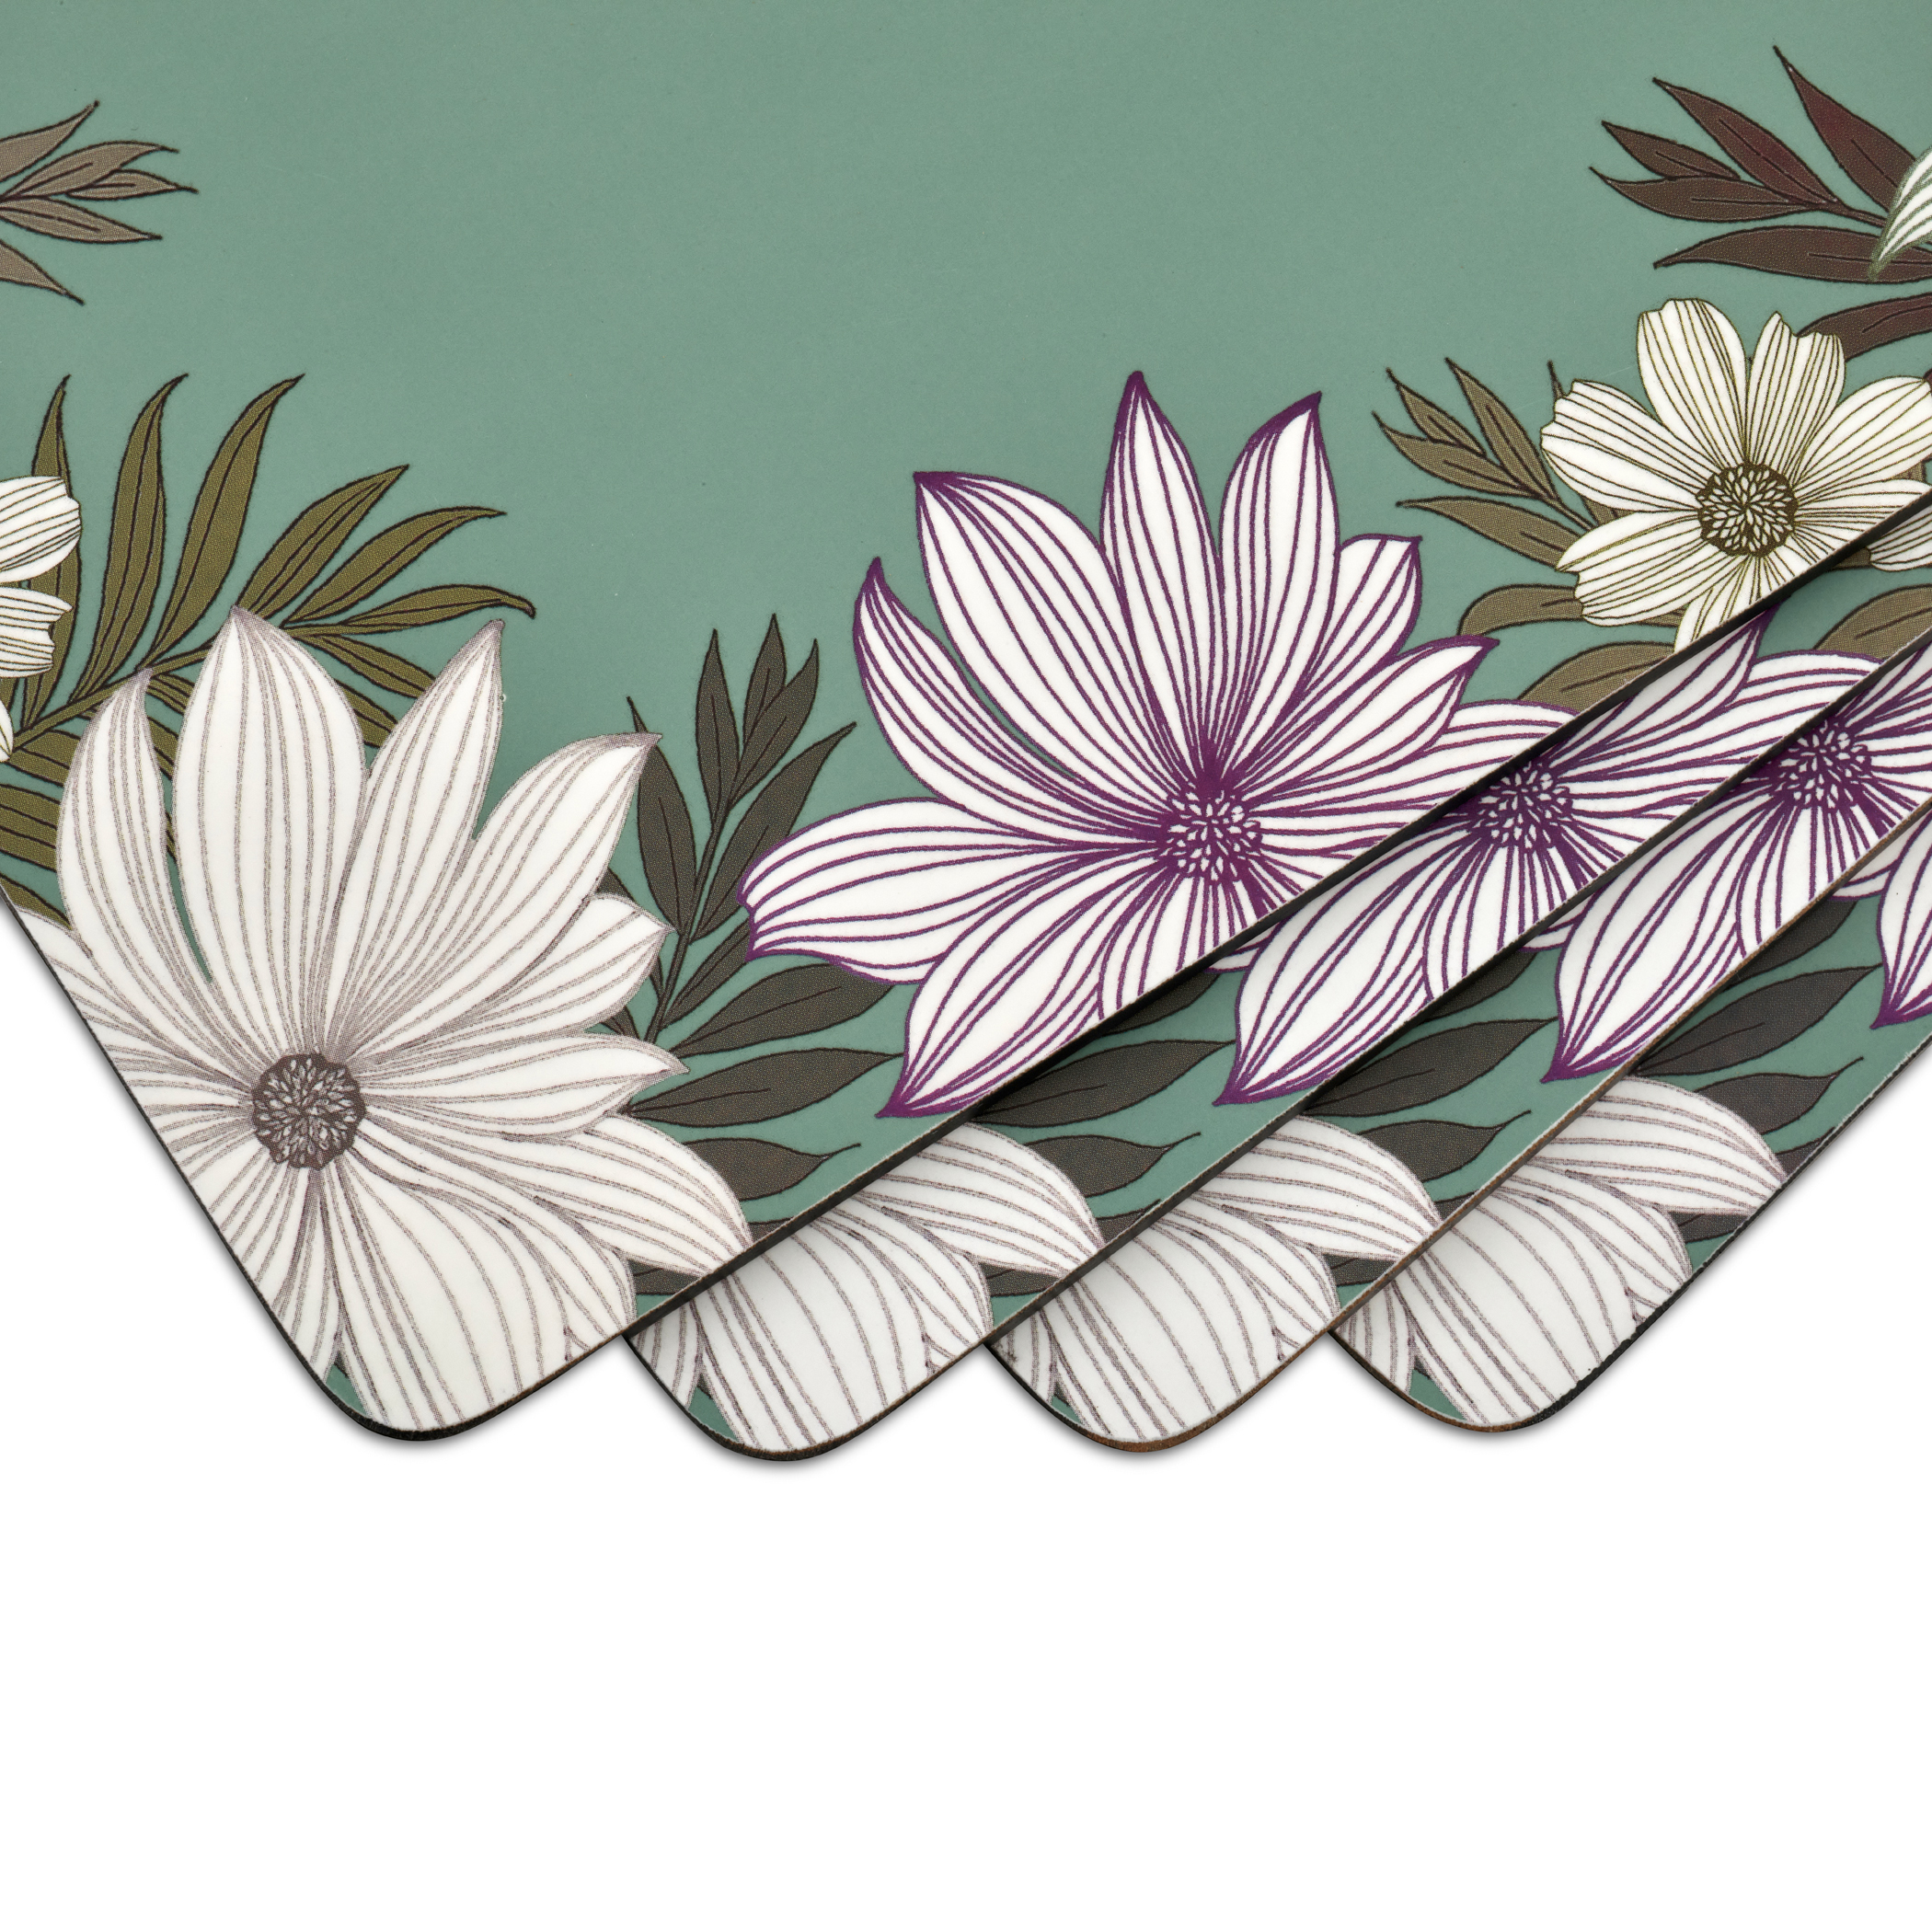 Pimpernel Atrium Placemats Set of 4 image number 2